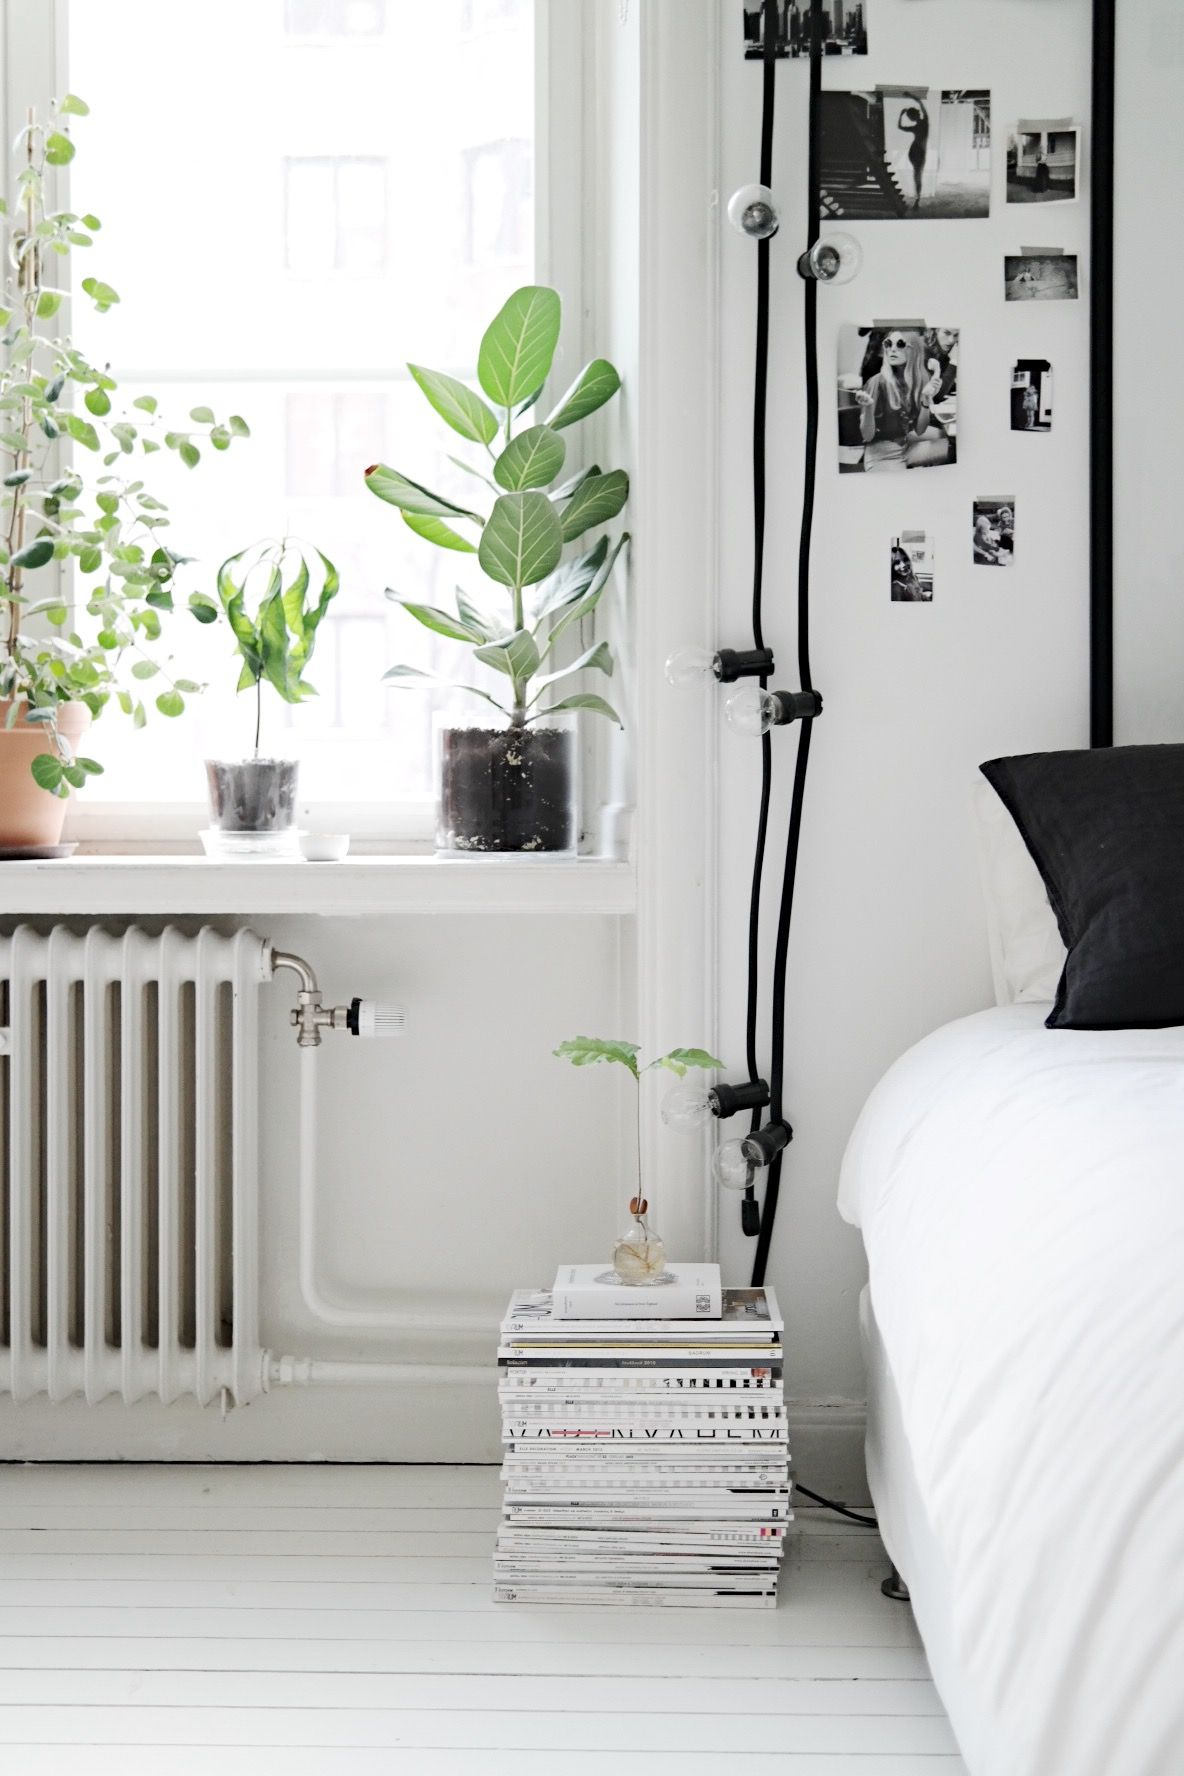 Schlafzimmer Inspiration Instagram Follow Interitrend Instagram Tumblr Rooms And Decorations